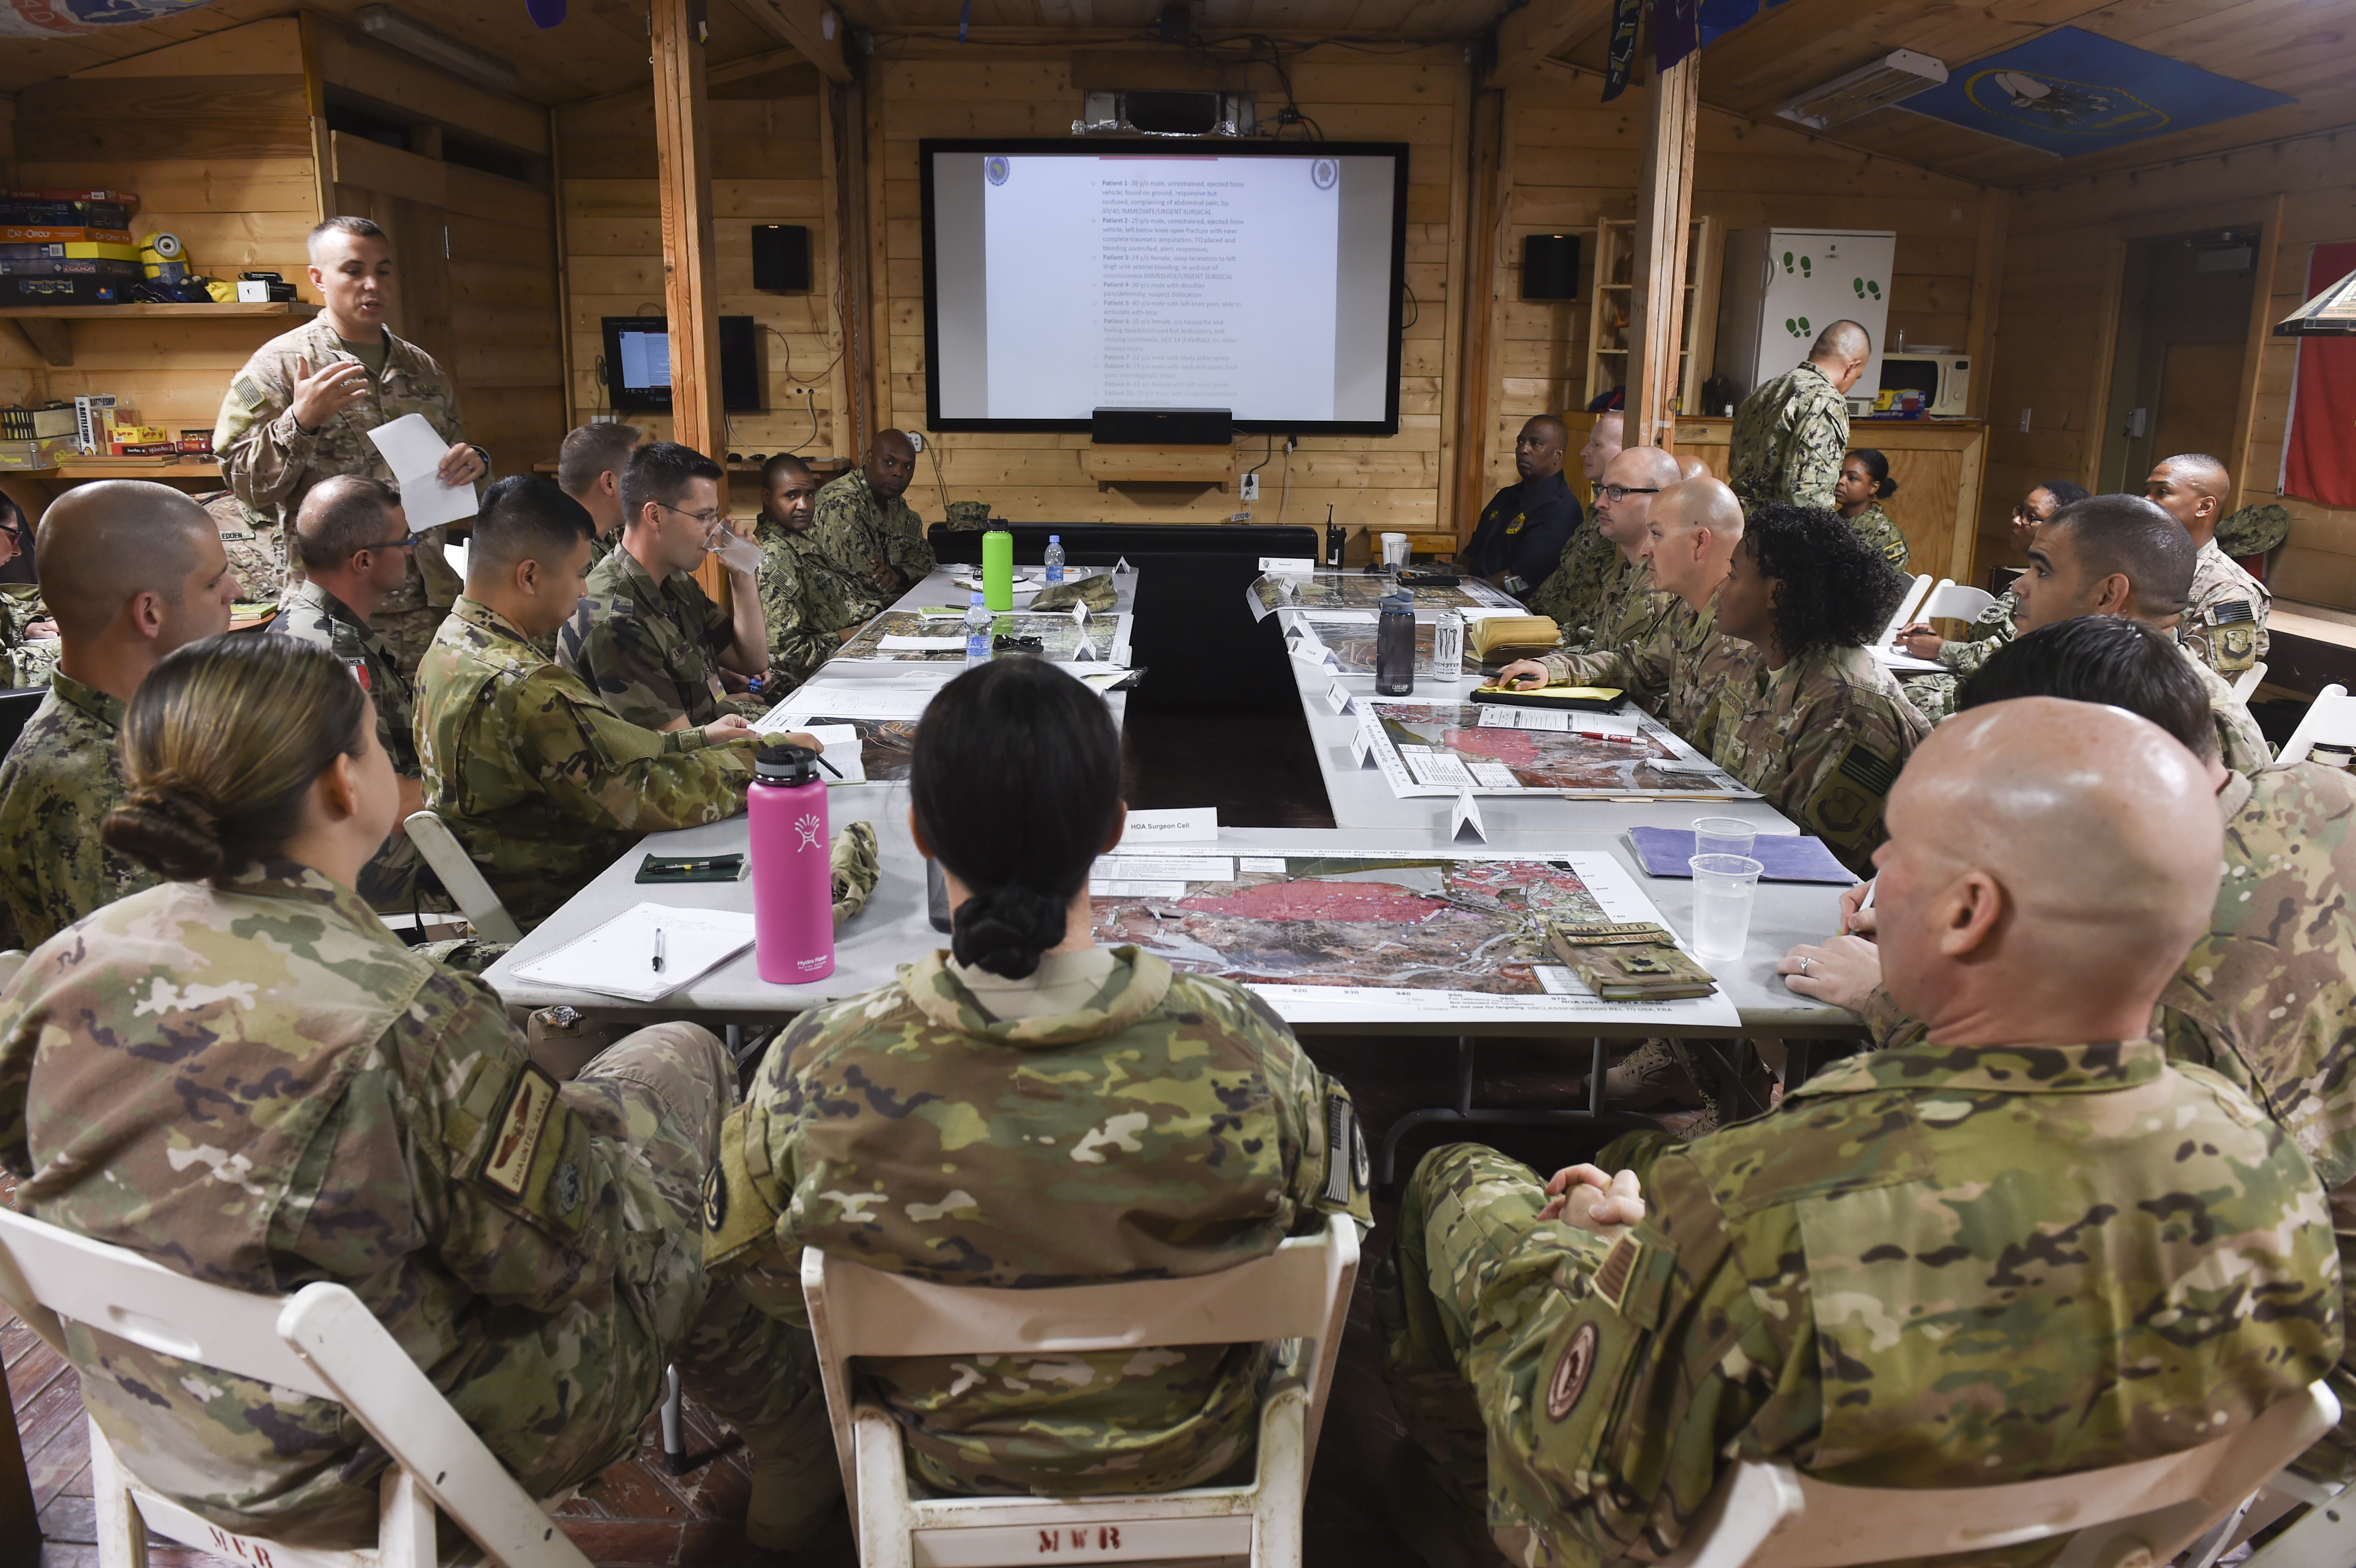 U.S. military personnel assigned to Camp Lemonnier and Combined Joint Task Force-Horn of Africa participated in a bilateral tabletop exercise with French forces, focusing on multiple unit support and response to a mass casualty incident at Camp Lemonnier, Sept. 6, 2017. The tabletop exercise was a first step in preparation for future bilateral exercises with the French military based in Djibouti to further strengthen international military relationships and medical-response capabilities. (U.S. Air Force photo by Staff Sgt. Eboni Prince)